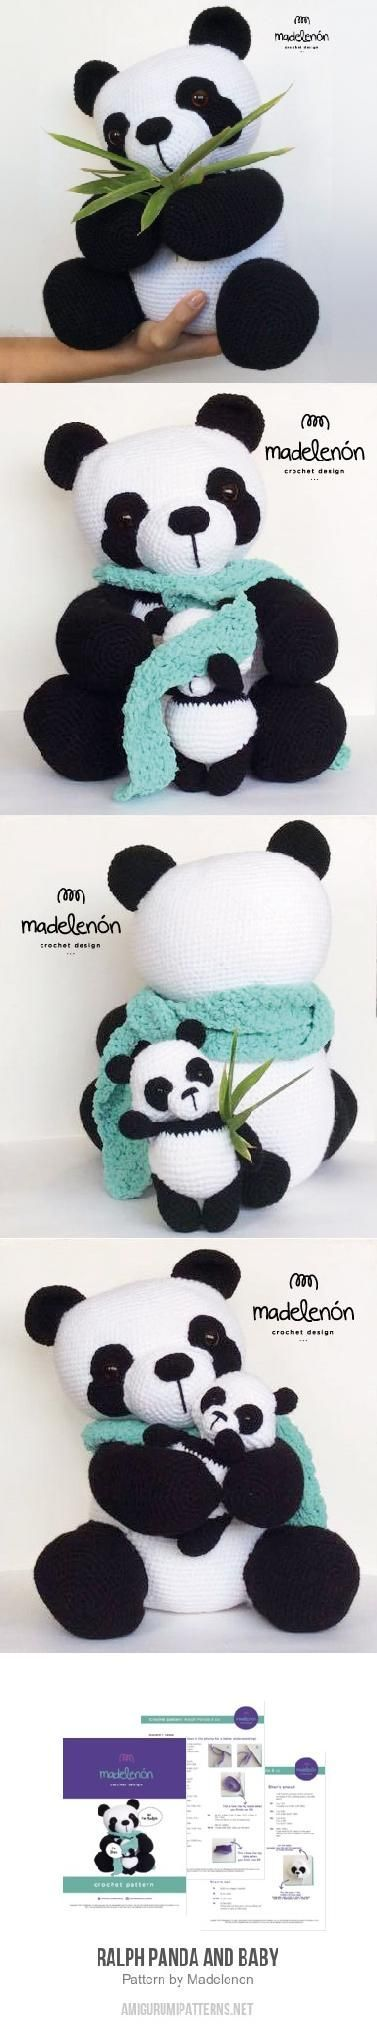 Best 25+ Crochet panda ideas on Pinterest Crochet ...